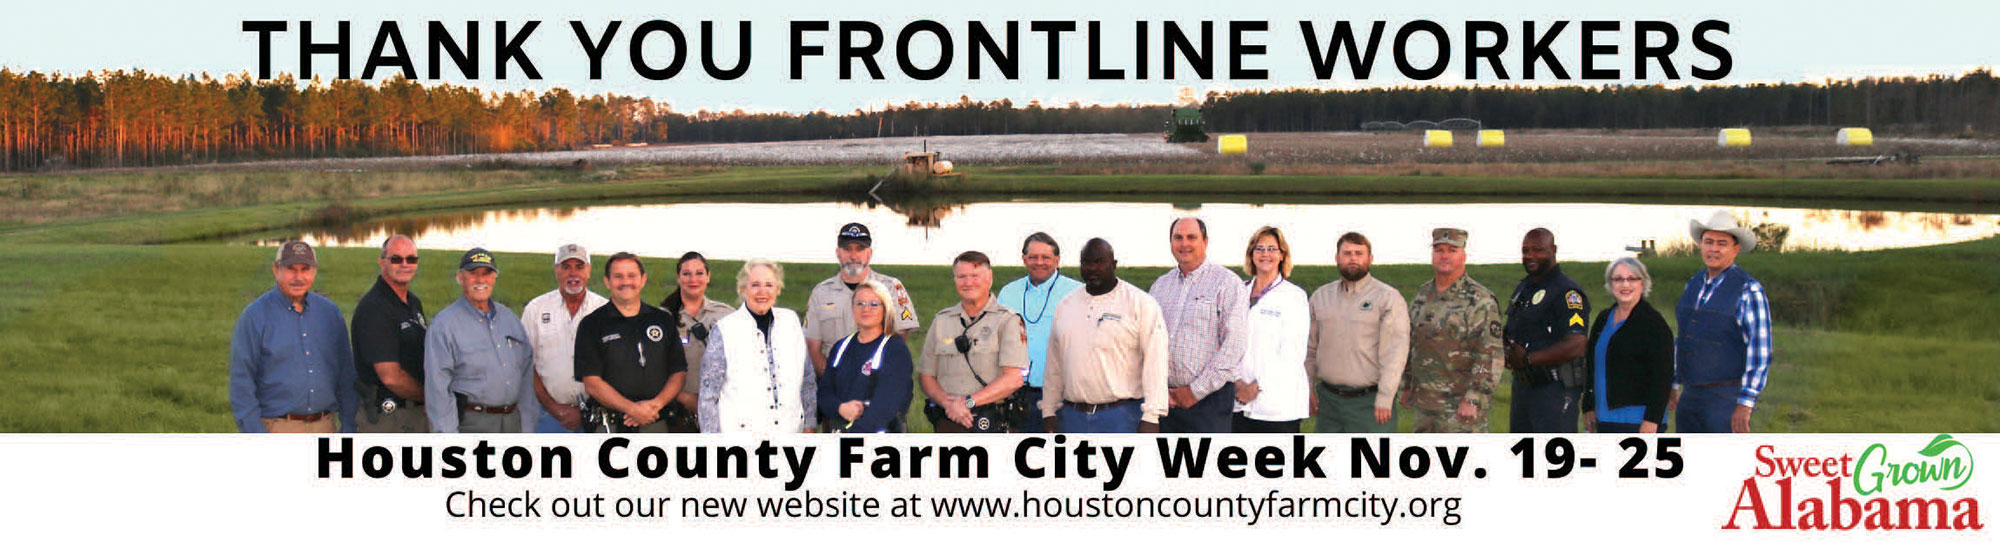 large group of frontline workers outside. Houston County Farm City Week November 19 to 25, check out our new website at www.houstoncountyfarmcity.org